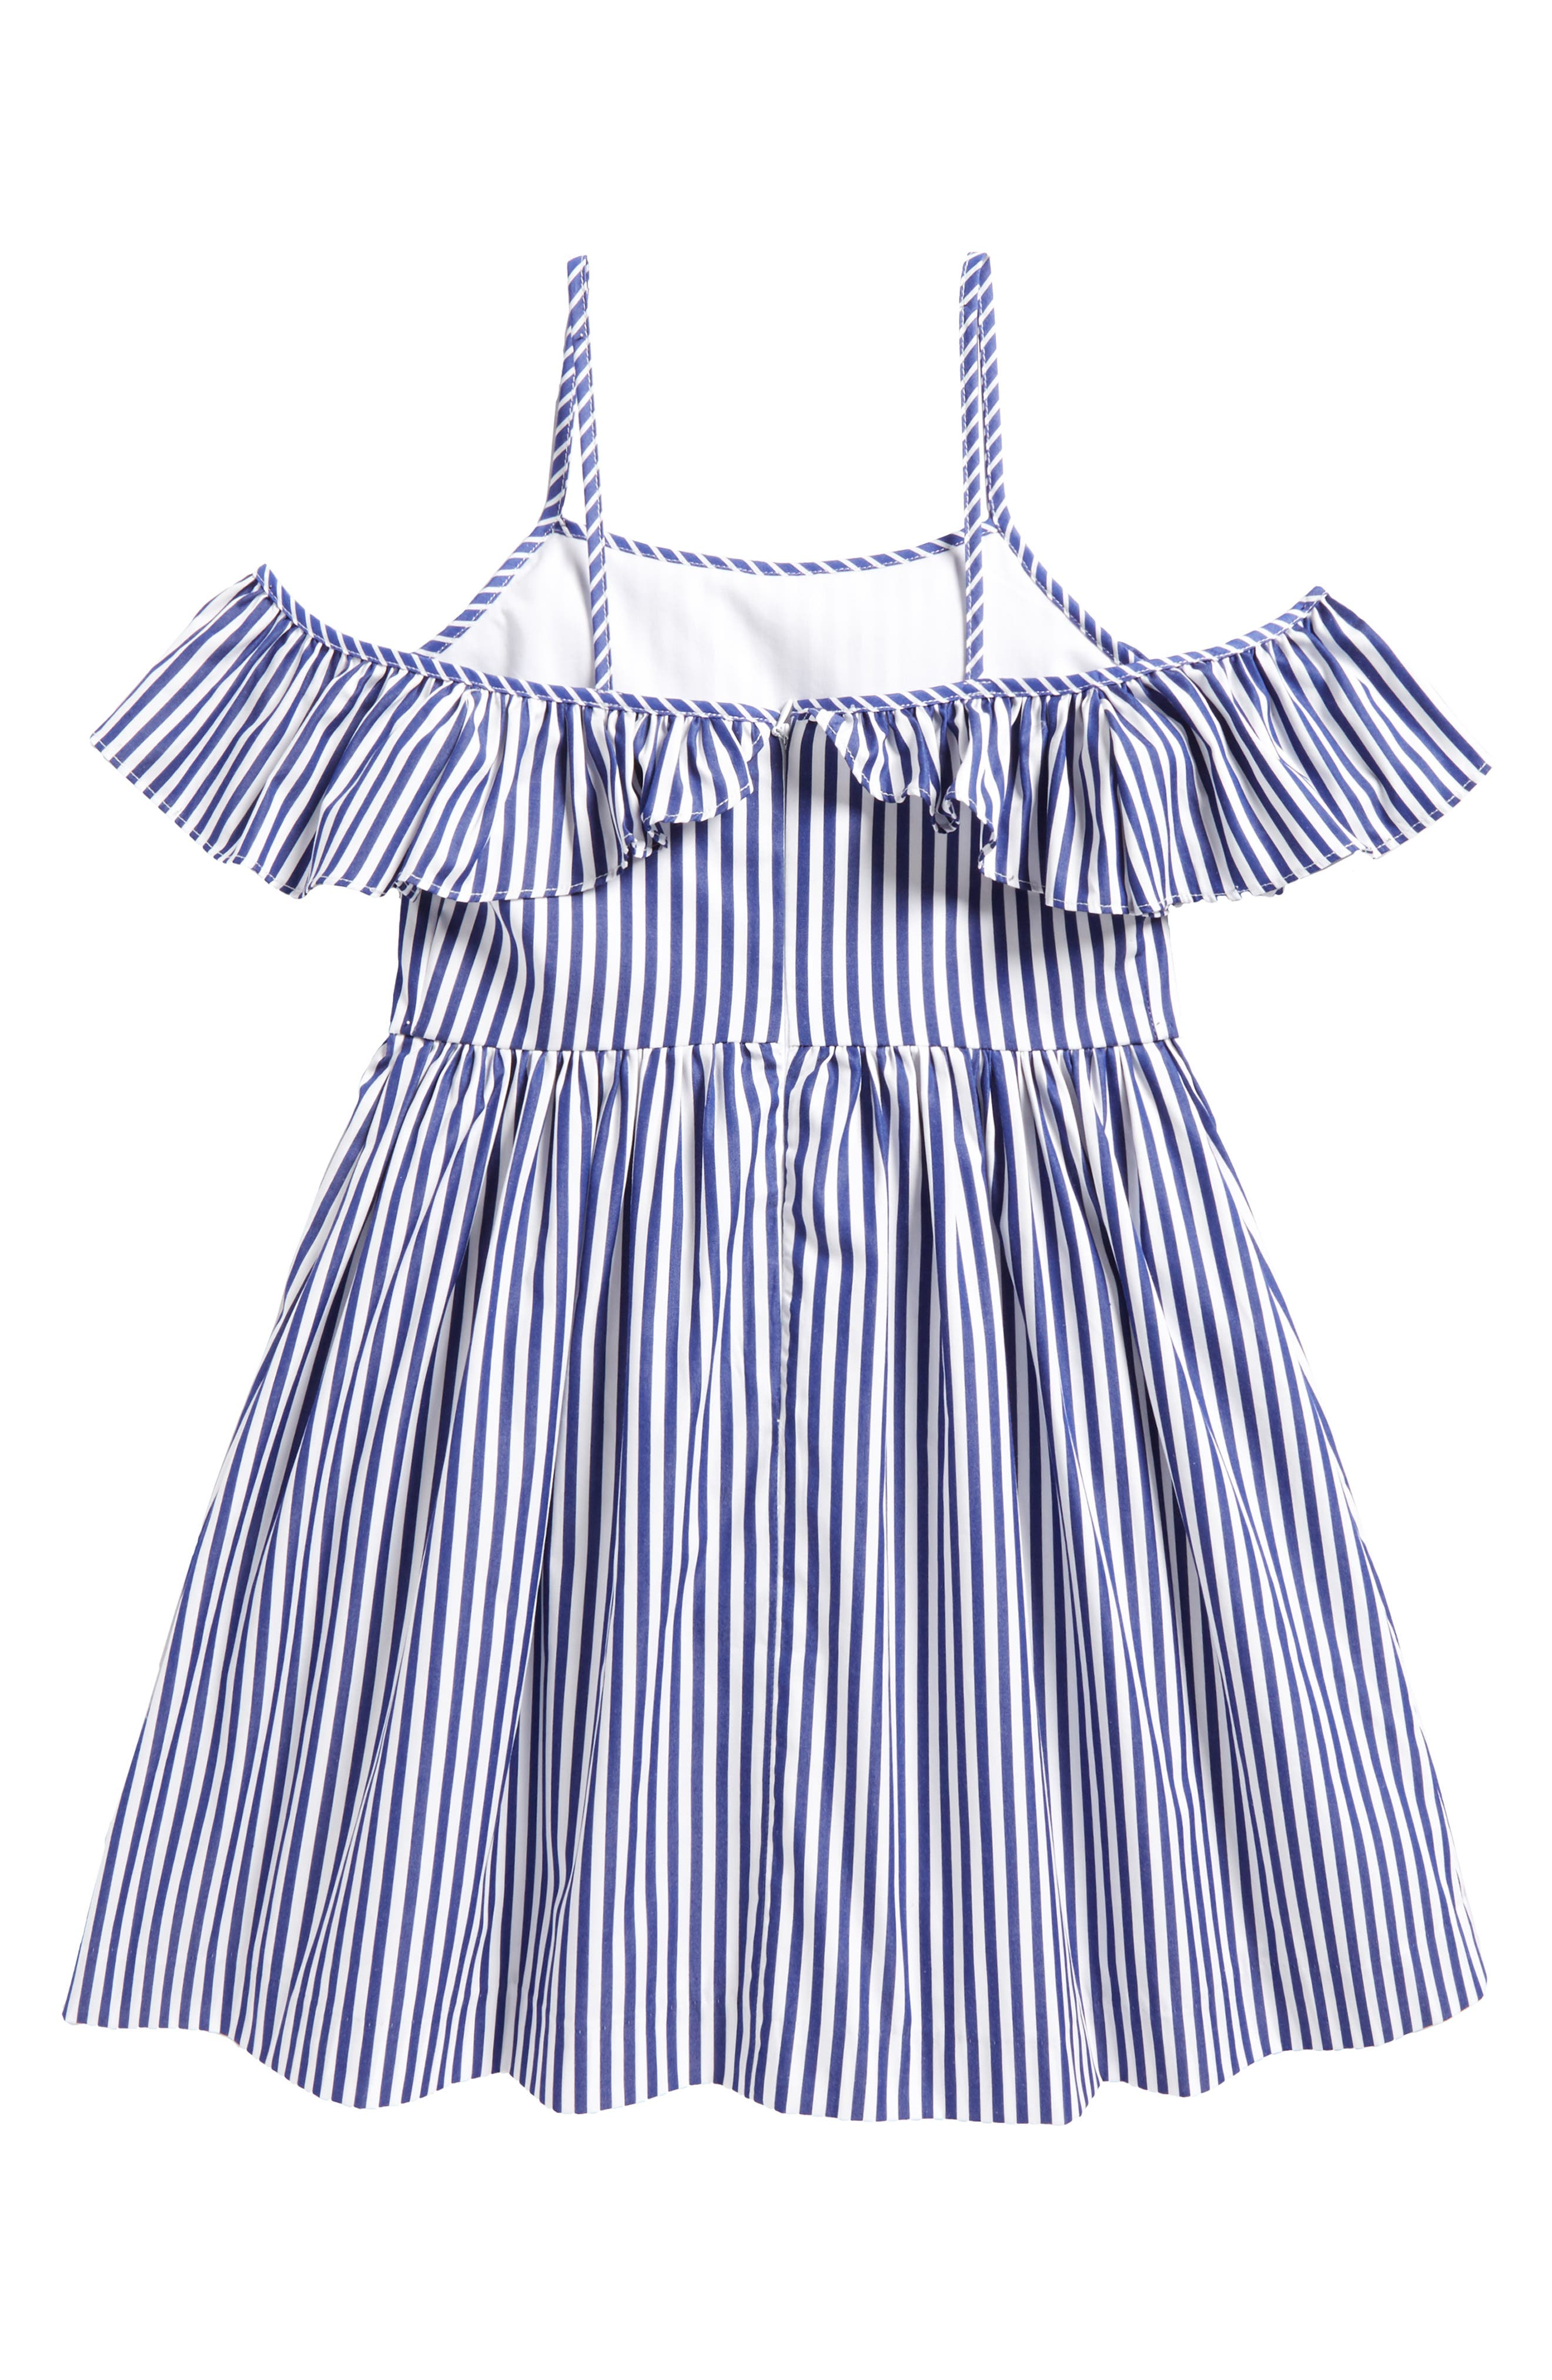 Alternate Image 2  - Milly Minis Bella Dress (Big Girls)